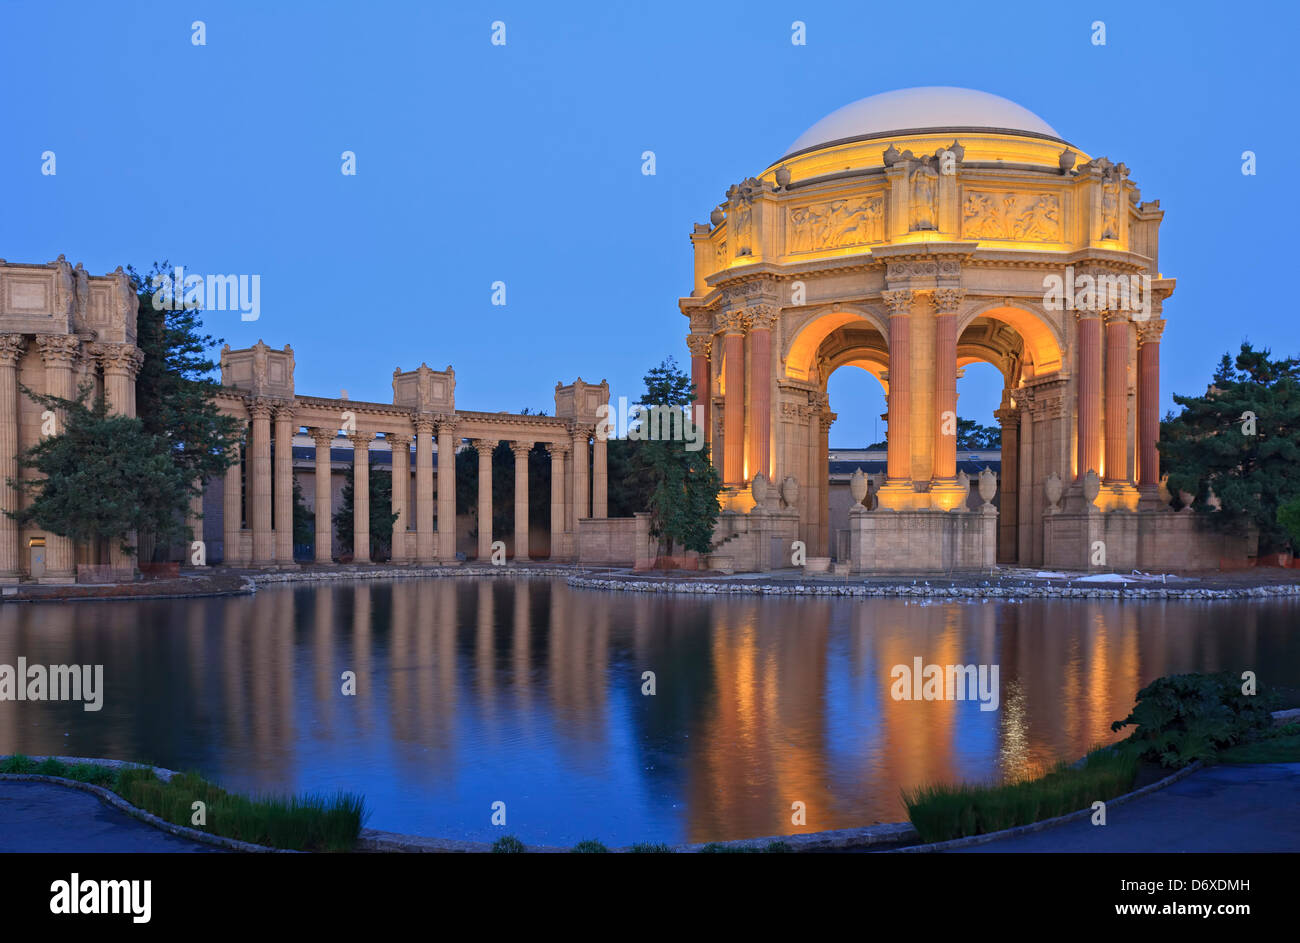 Palace of Fine Arts and Exploratorium at twilight, San Francisco, California USA - Stock Image